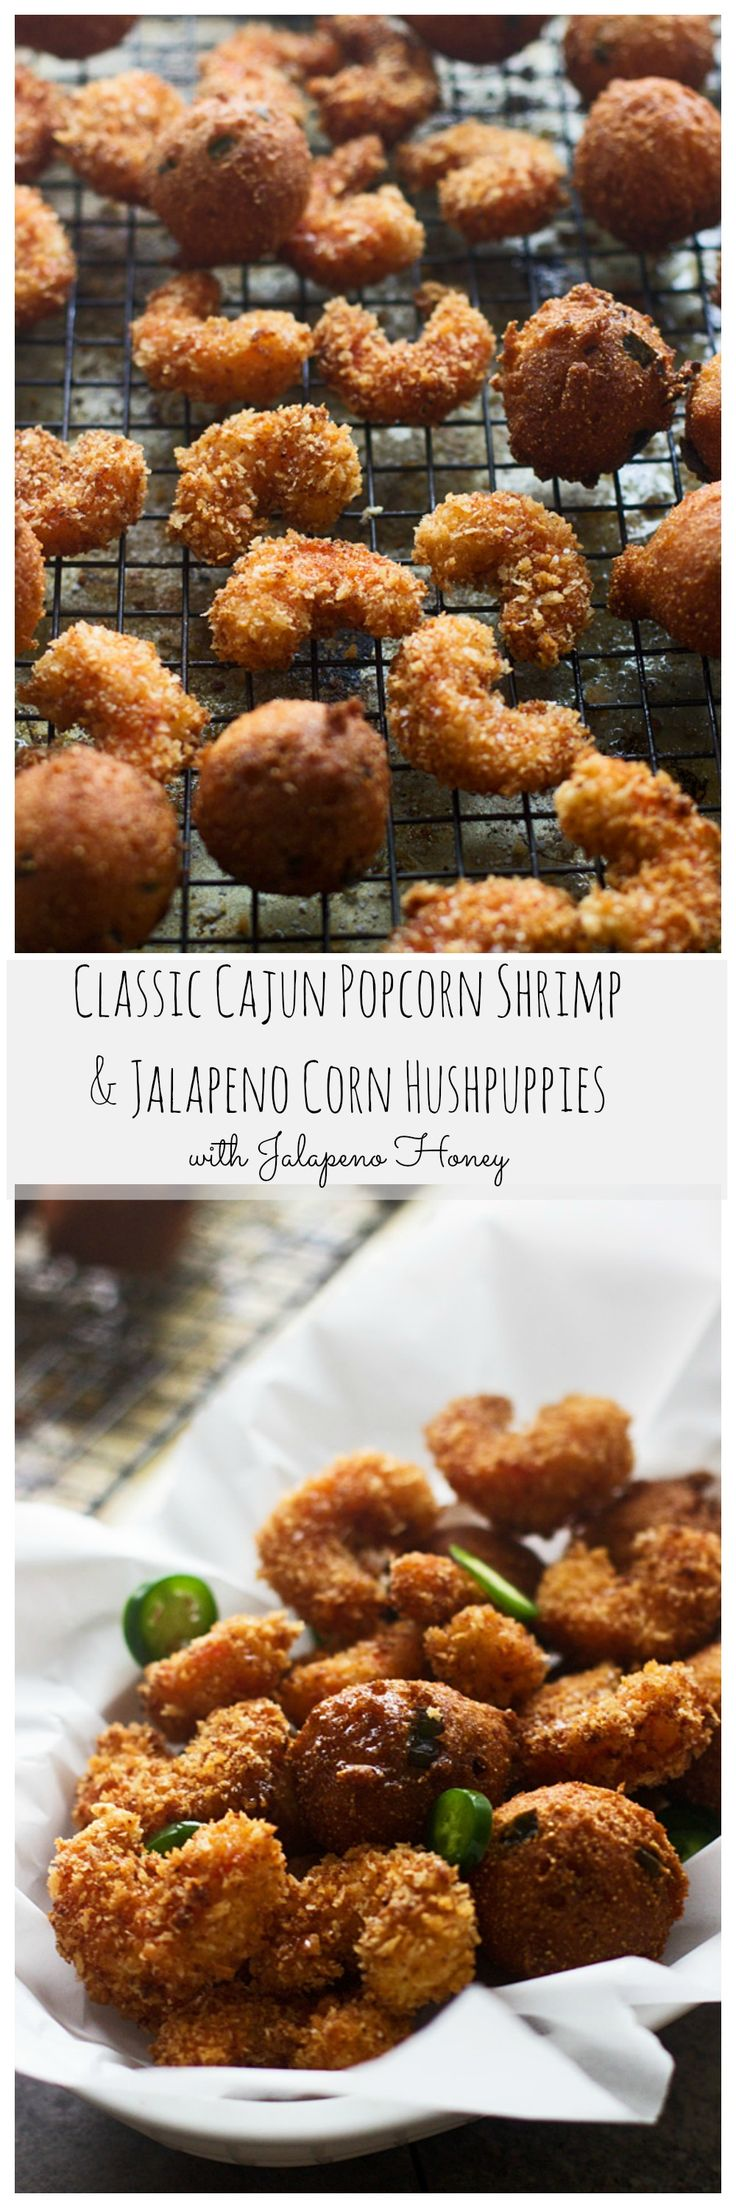 Popcorn Shrimp and Corn Jalapeño Hushpuppies with Jalapeño Honey